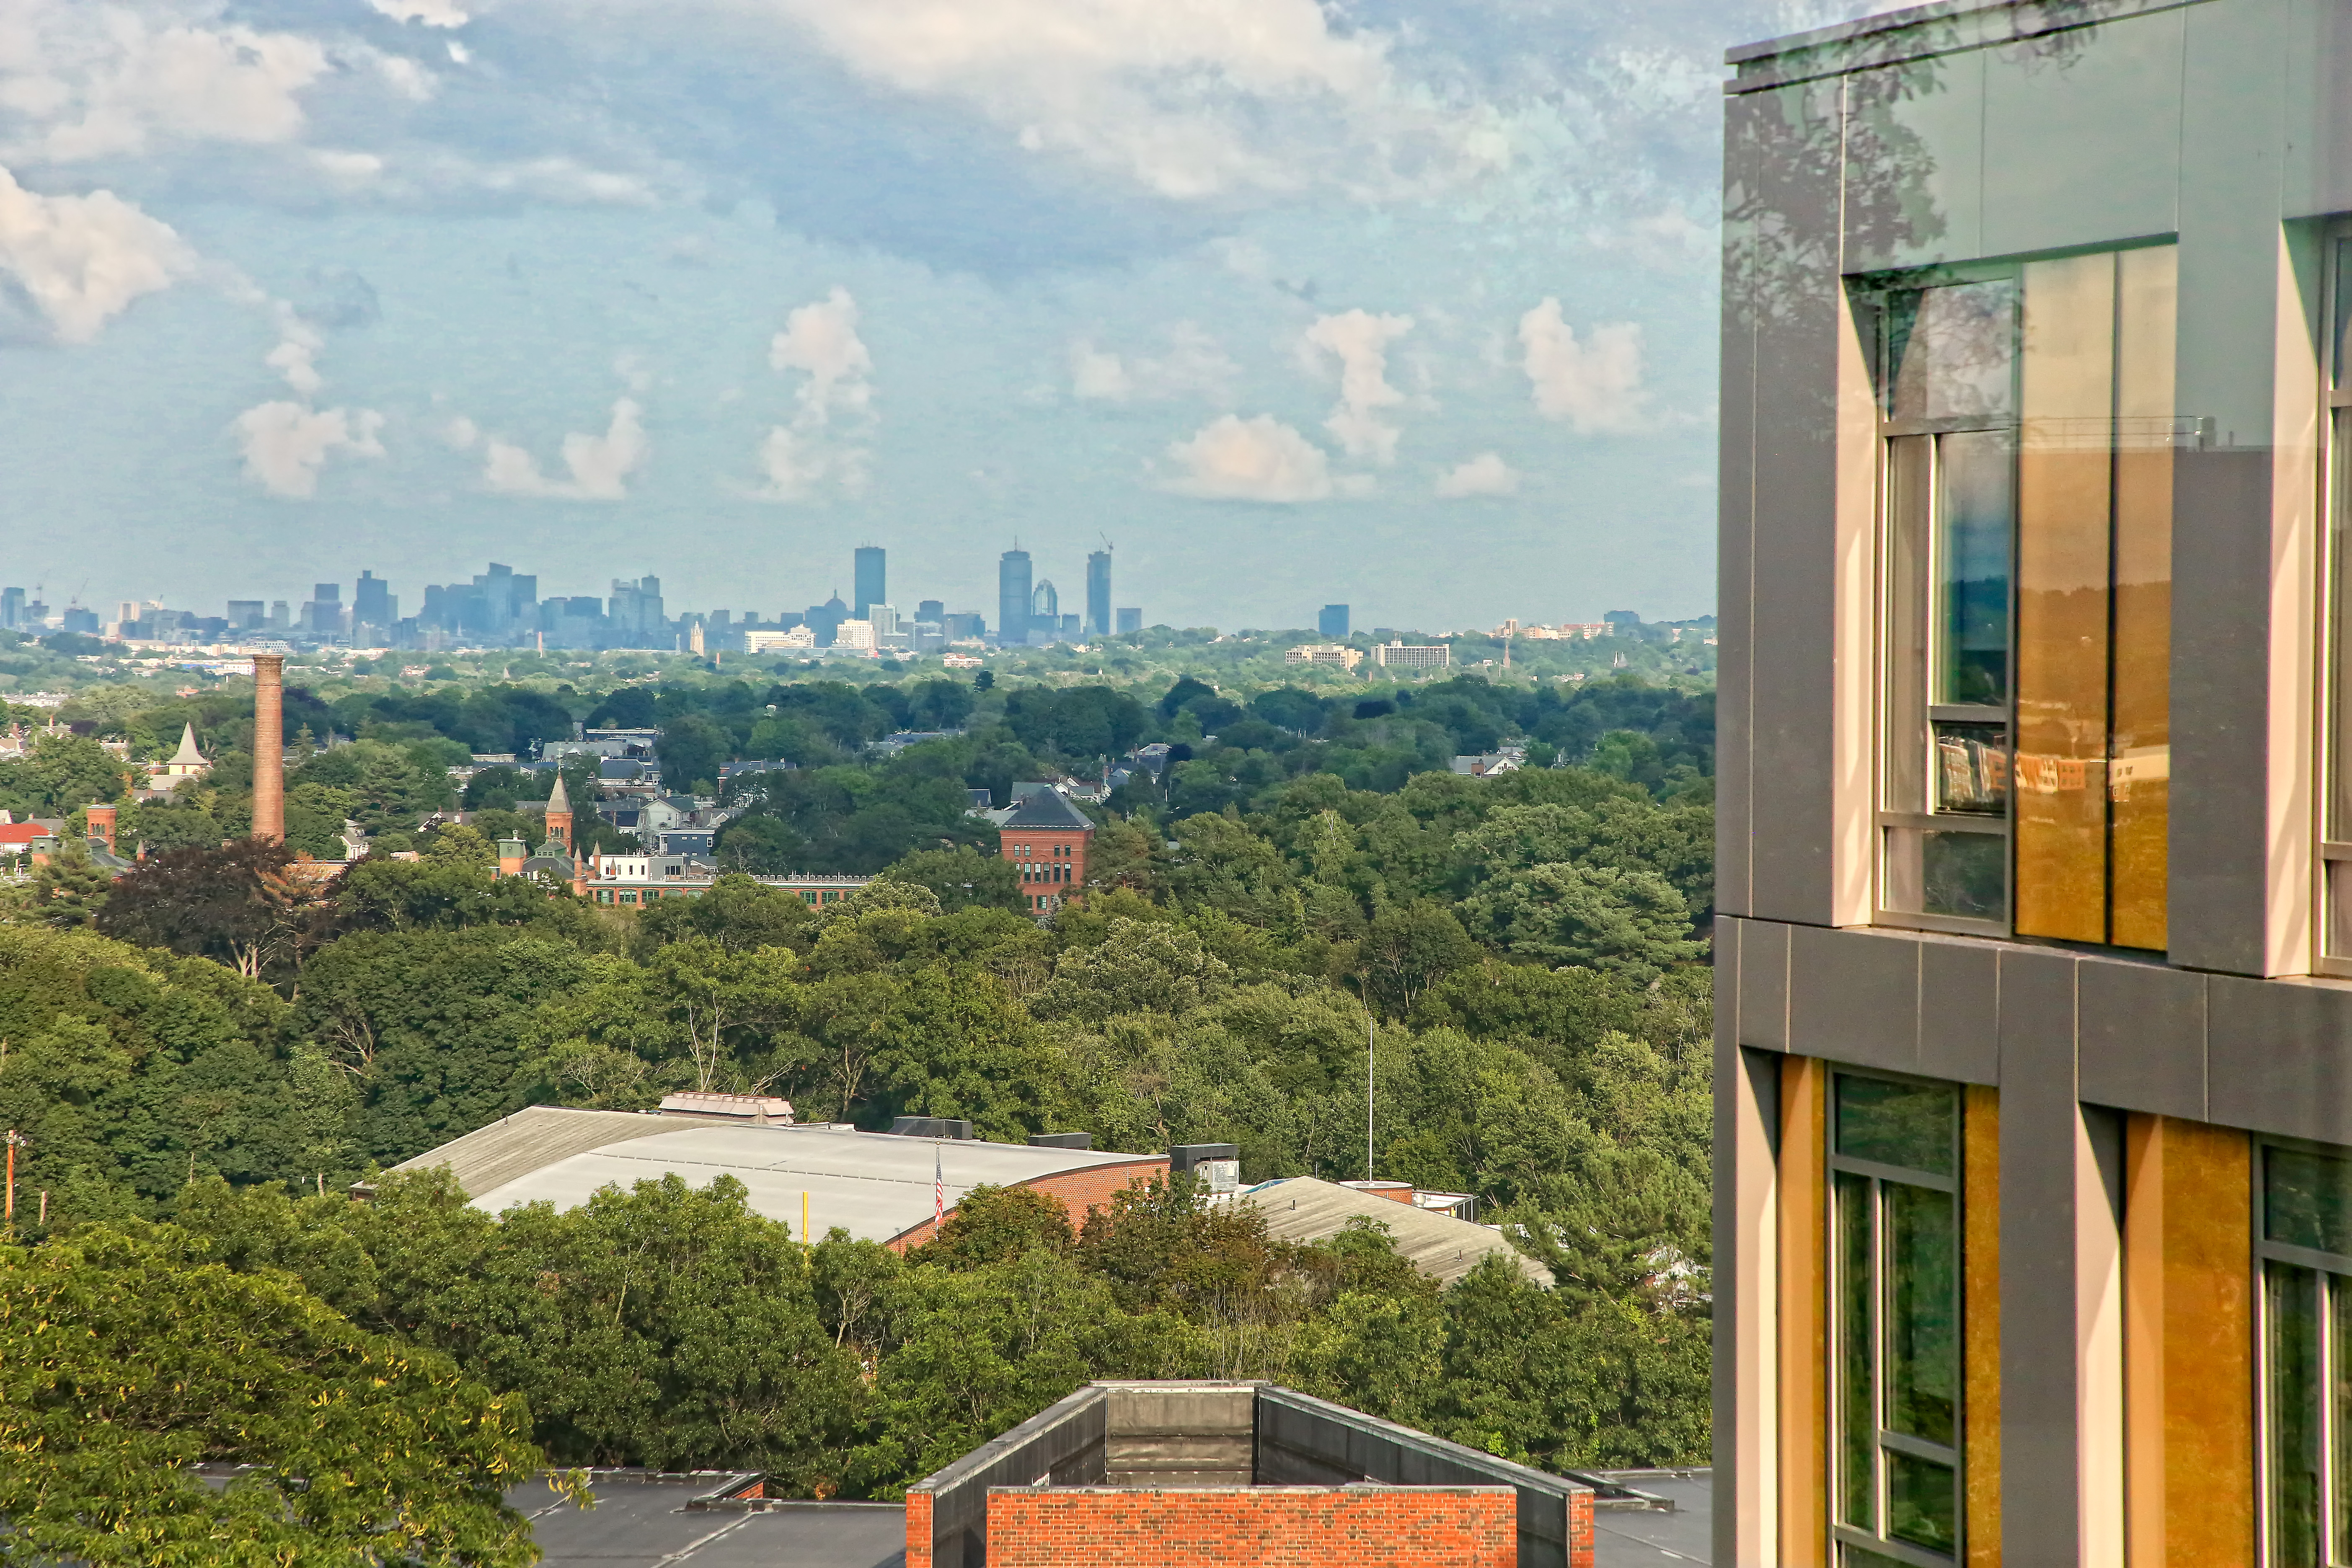 Boston Skyline viewed from a building on the Brandeis University campus